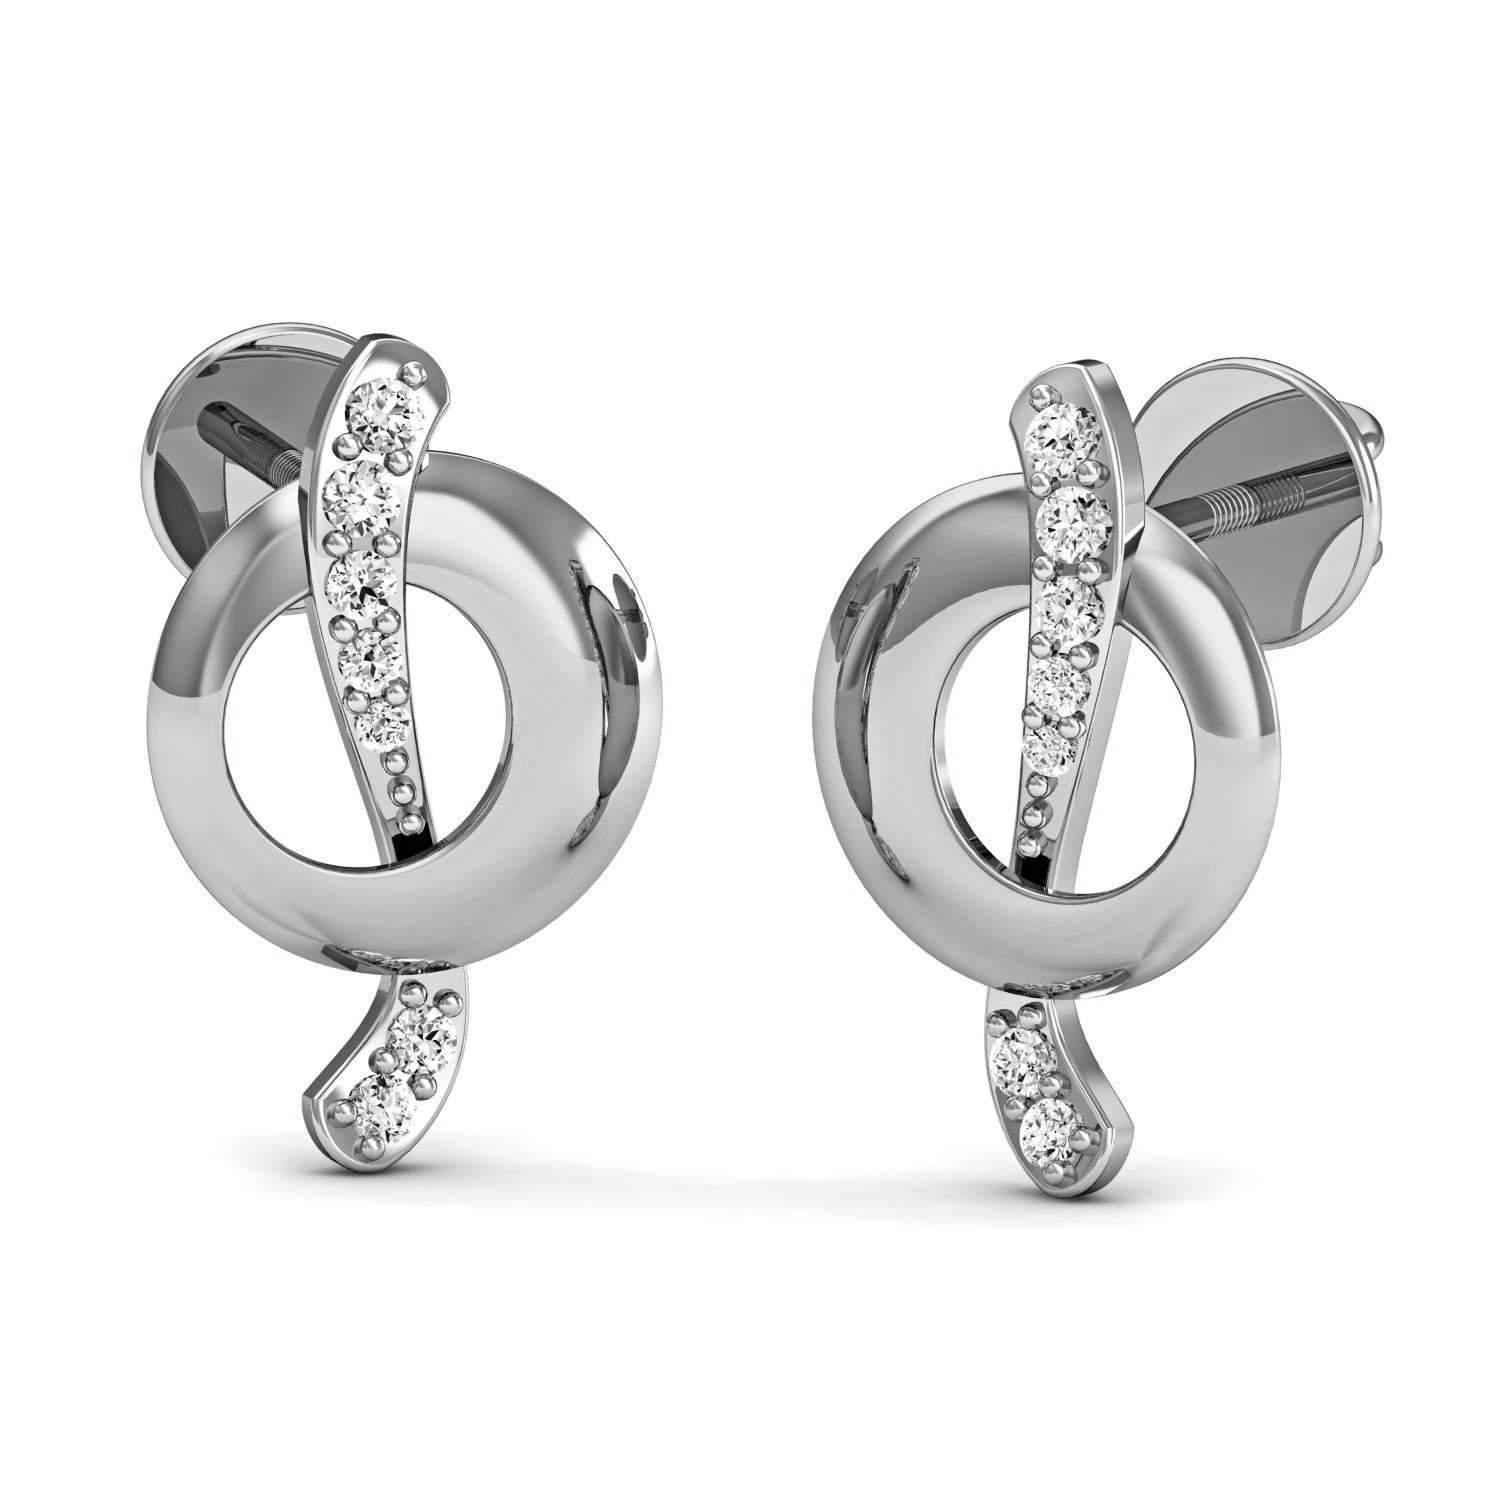 Diamoire Jewels Hand-hammered Pave Diamond and 18kt White Gold Earrings vhVC5